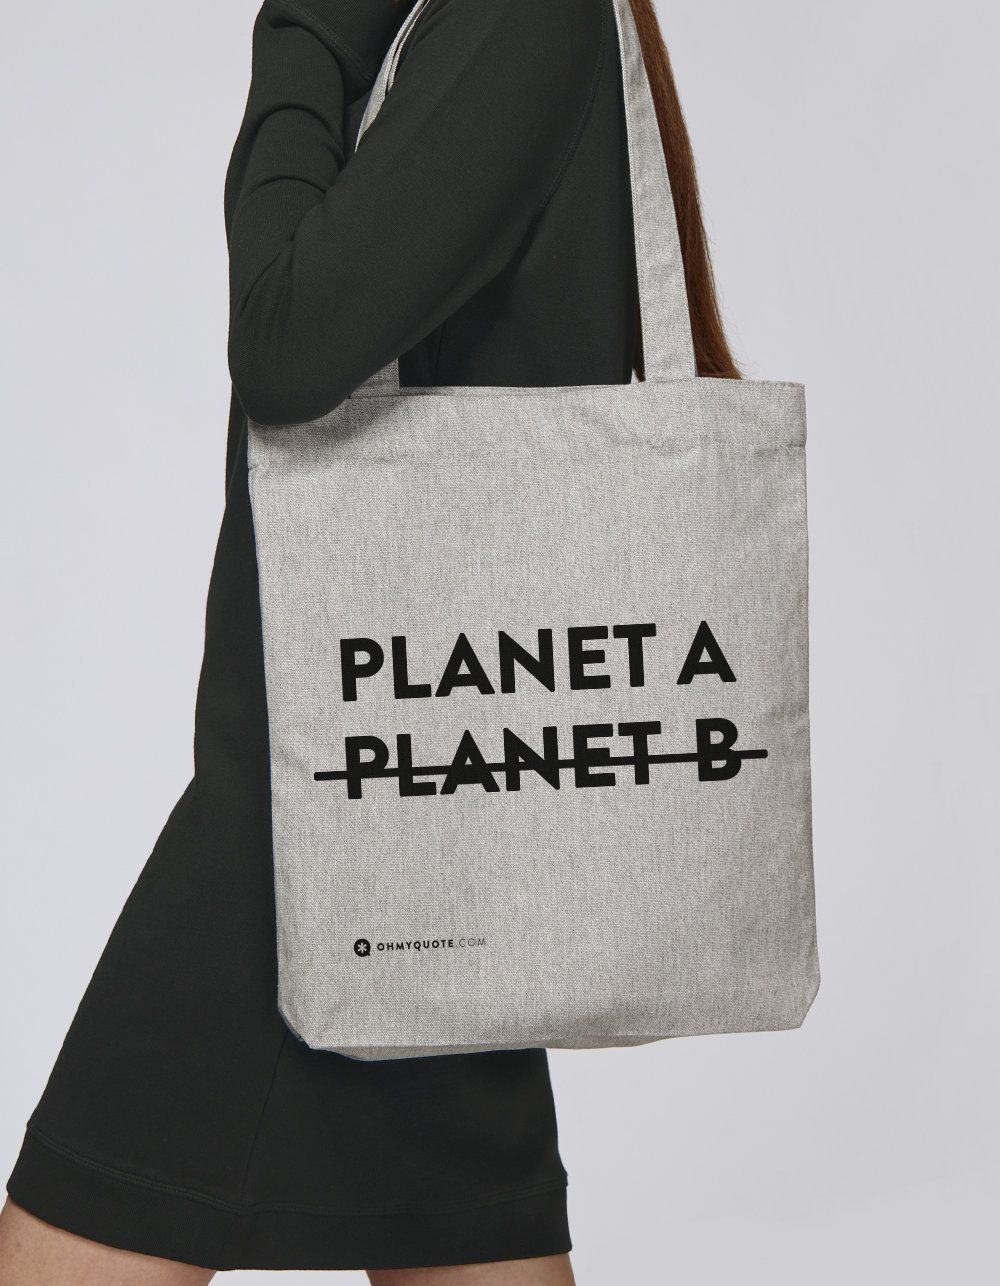 Reduce Eco Friendly Gift women/'s large tote bag Large Eco tote bag No Planet B tote Women/'s gift Reuse Recycle tote bag